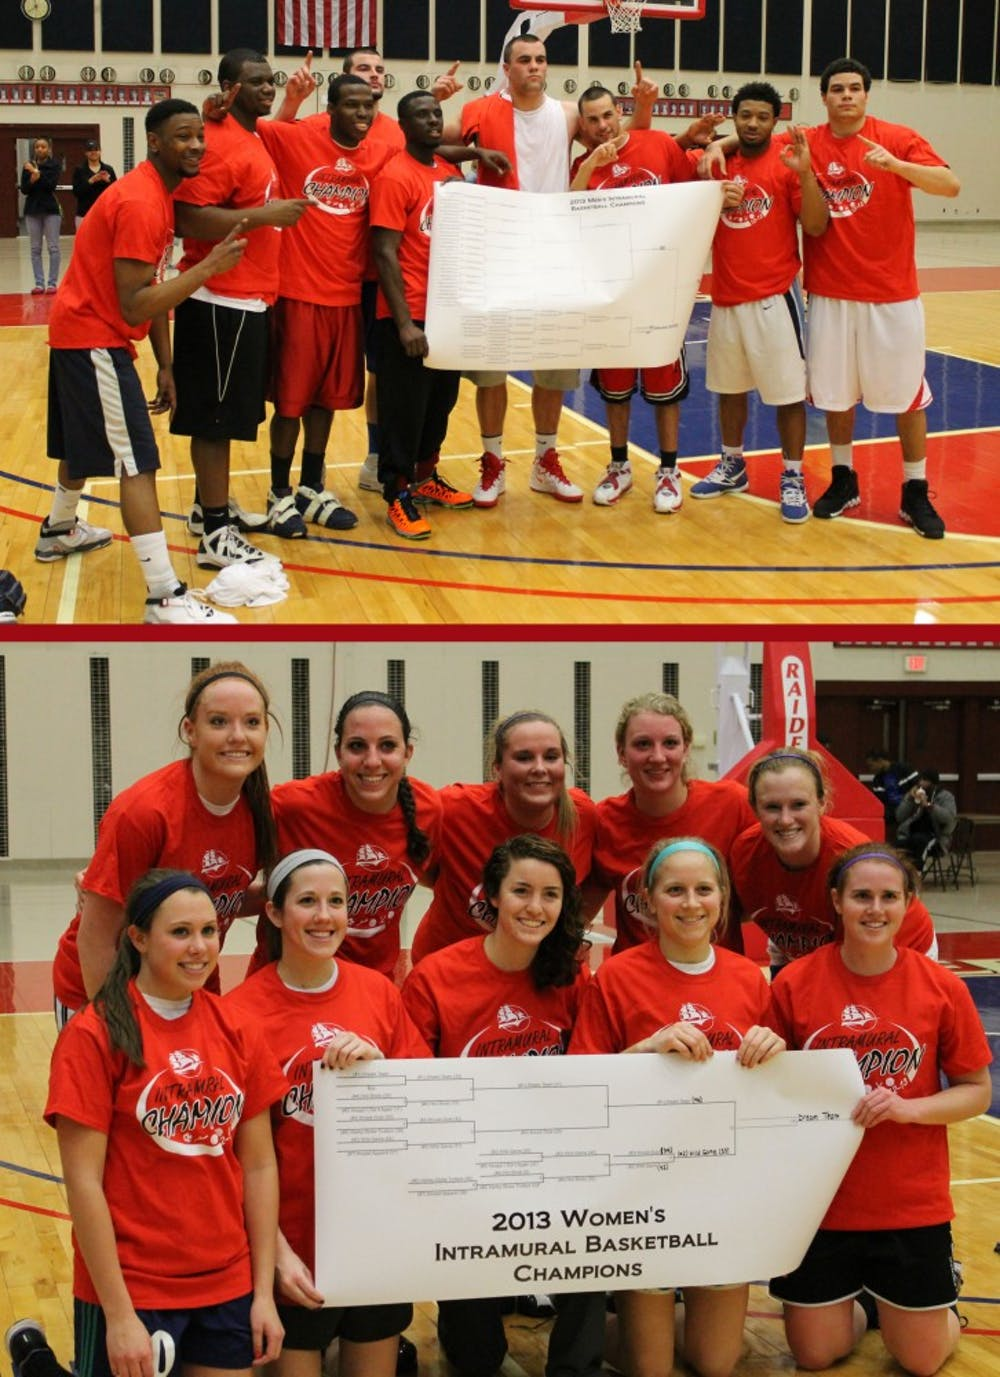 Dream Team and F.P.C. take home intramural crowns